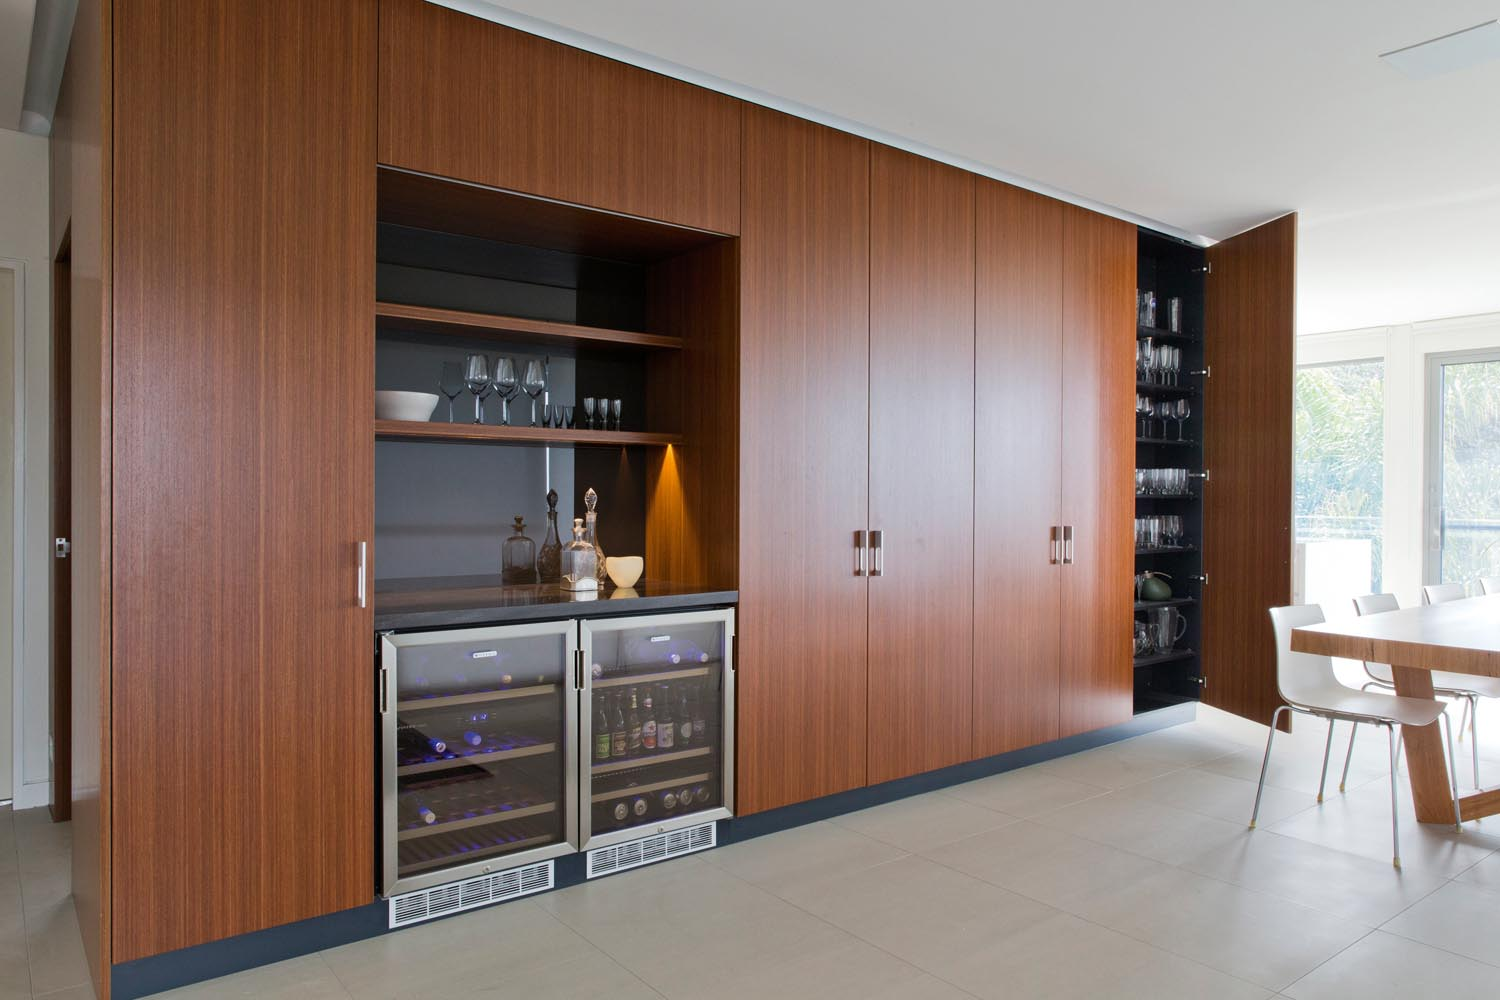 A minibar and a big cupboard for glassware